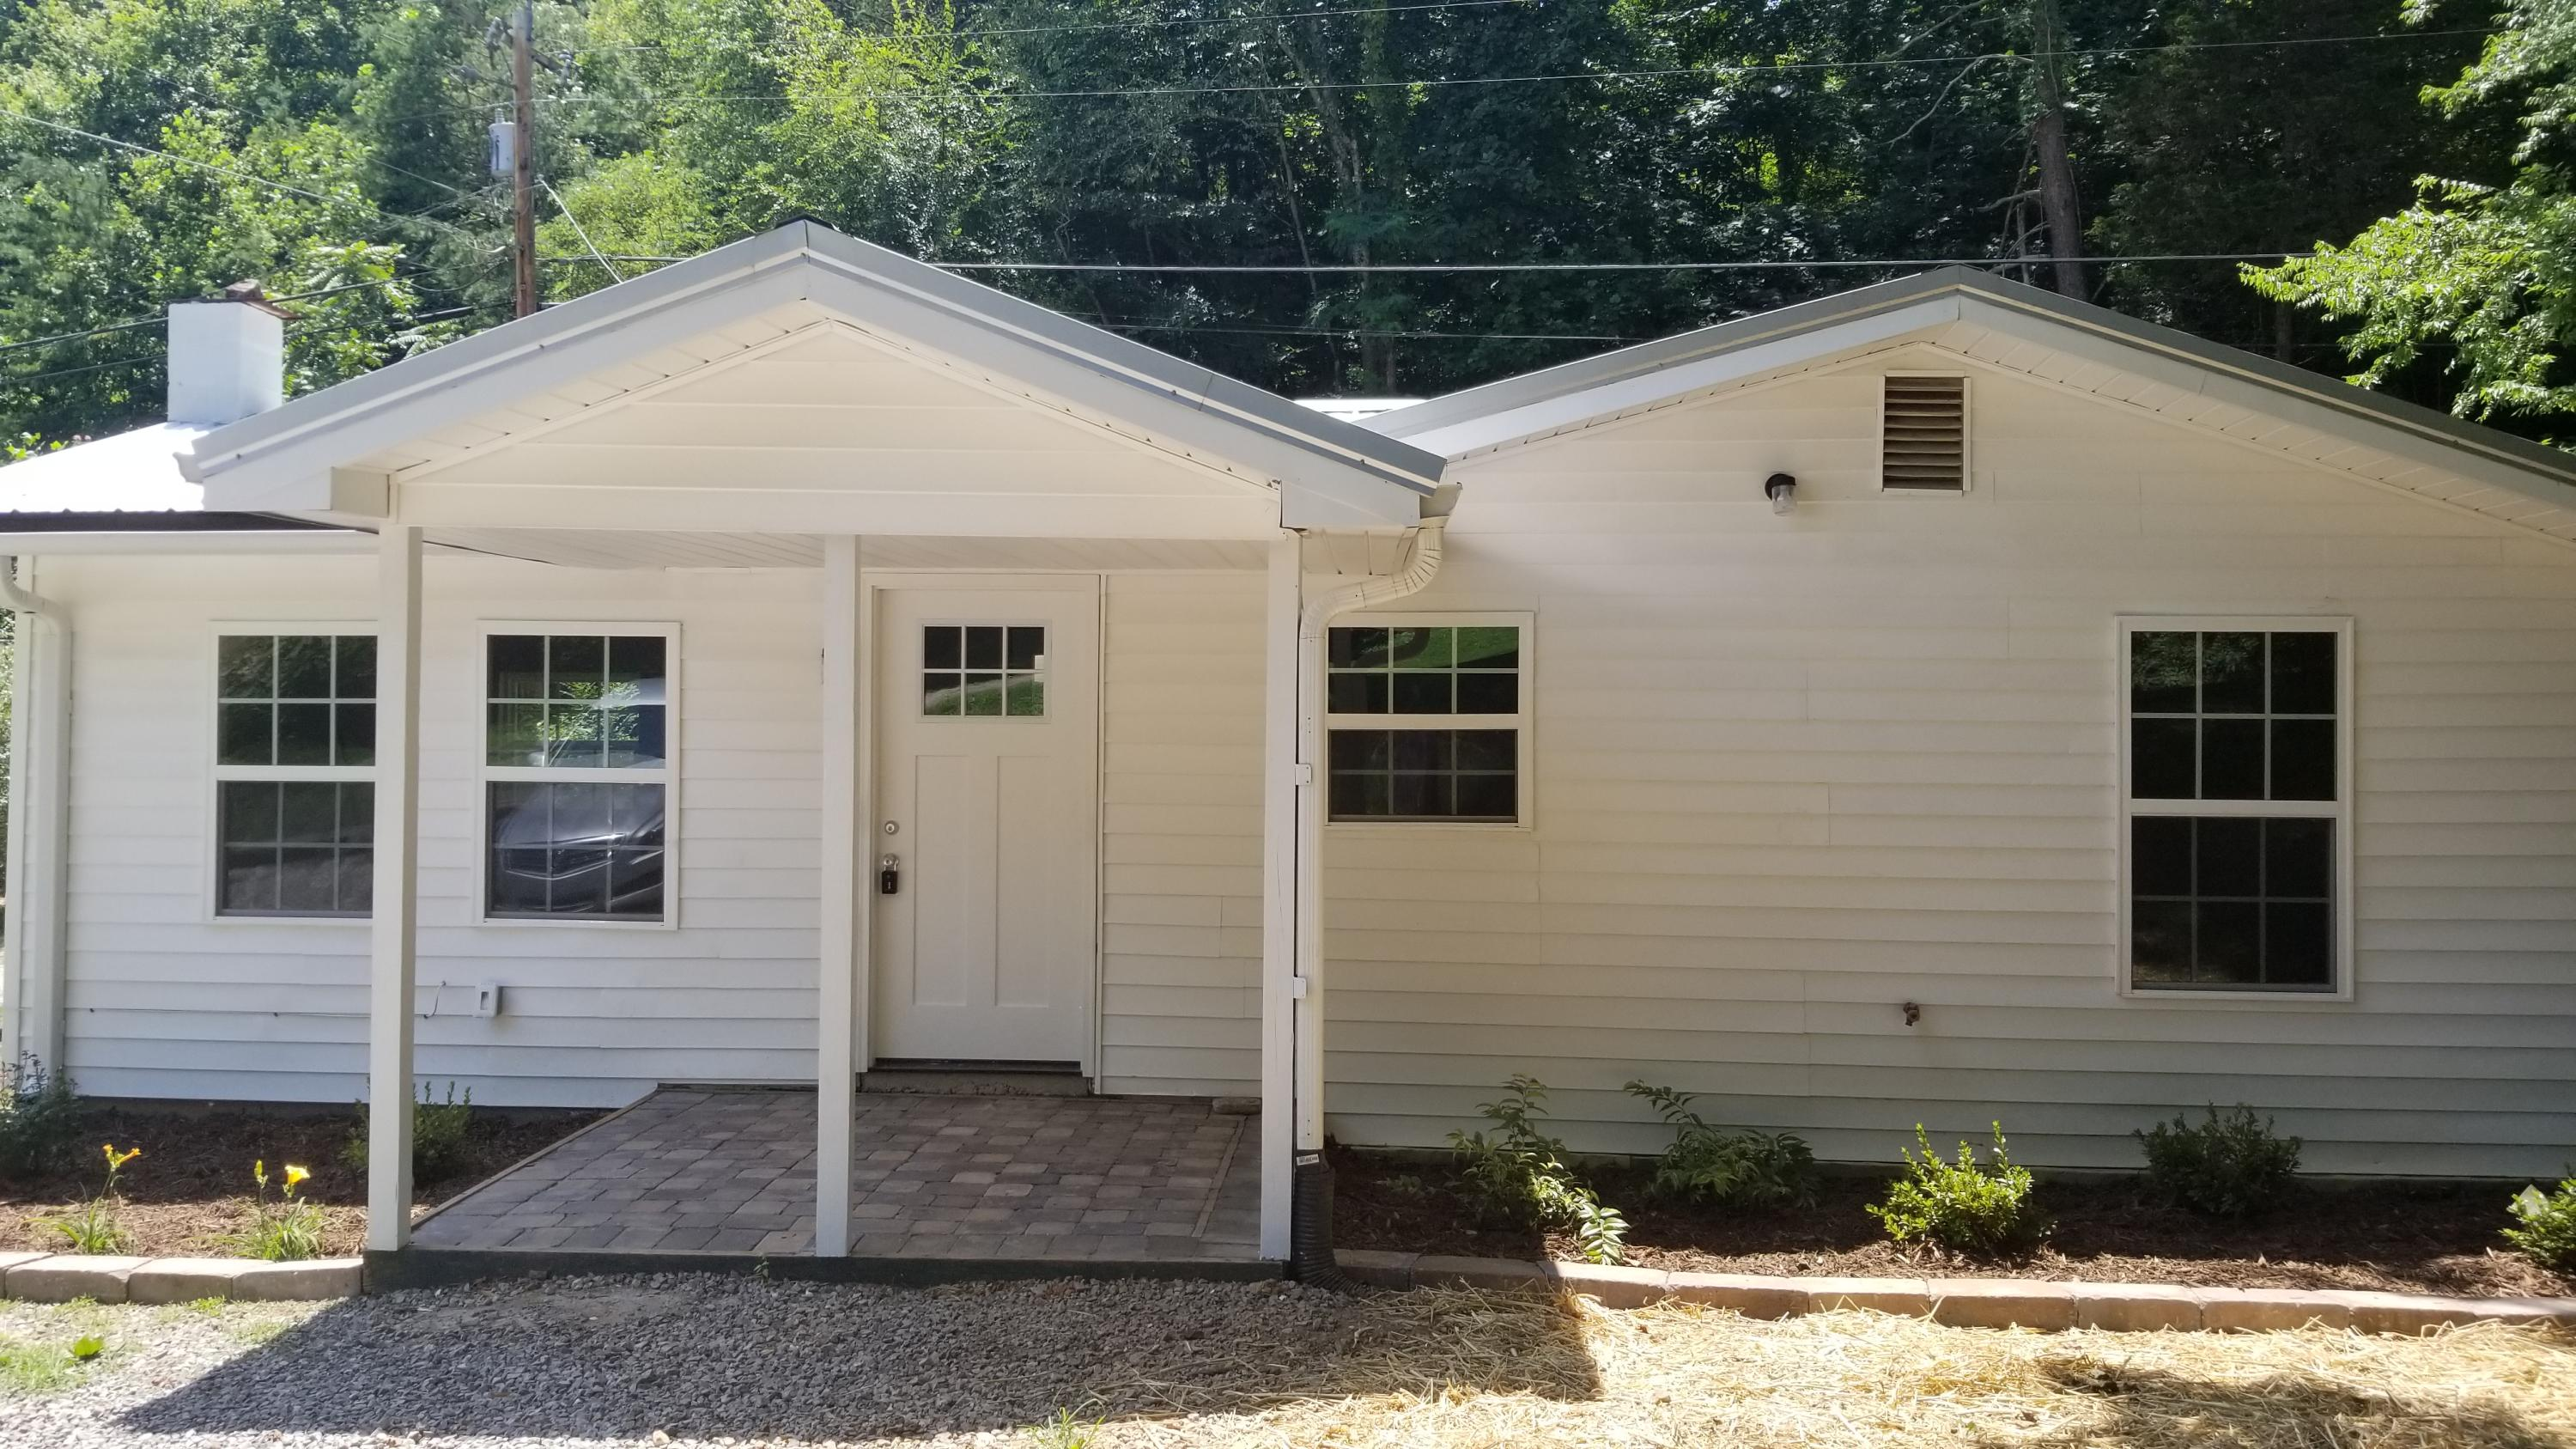 193 Laurel Hollow, Clinton, Tennessee, United States 37716, 2 Bedrooms Bedrooms, ,2 BathroomsBathrooms,Single Family,For Sale,Laurel Hollow,1081598